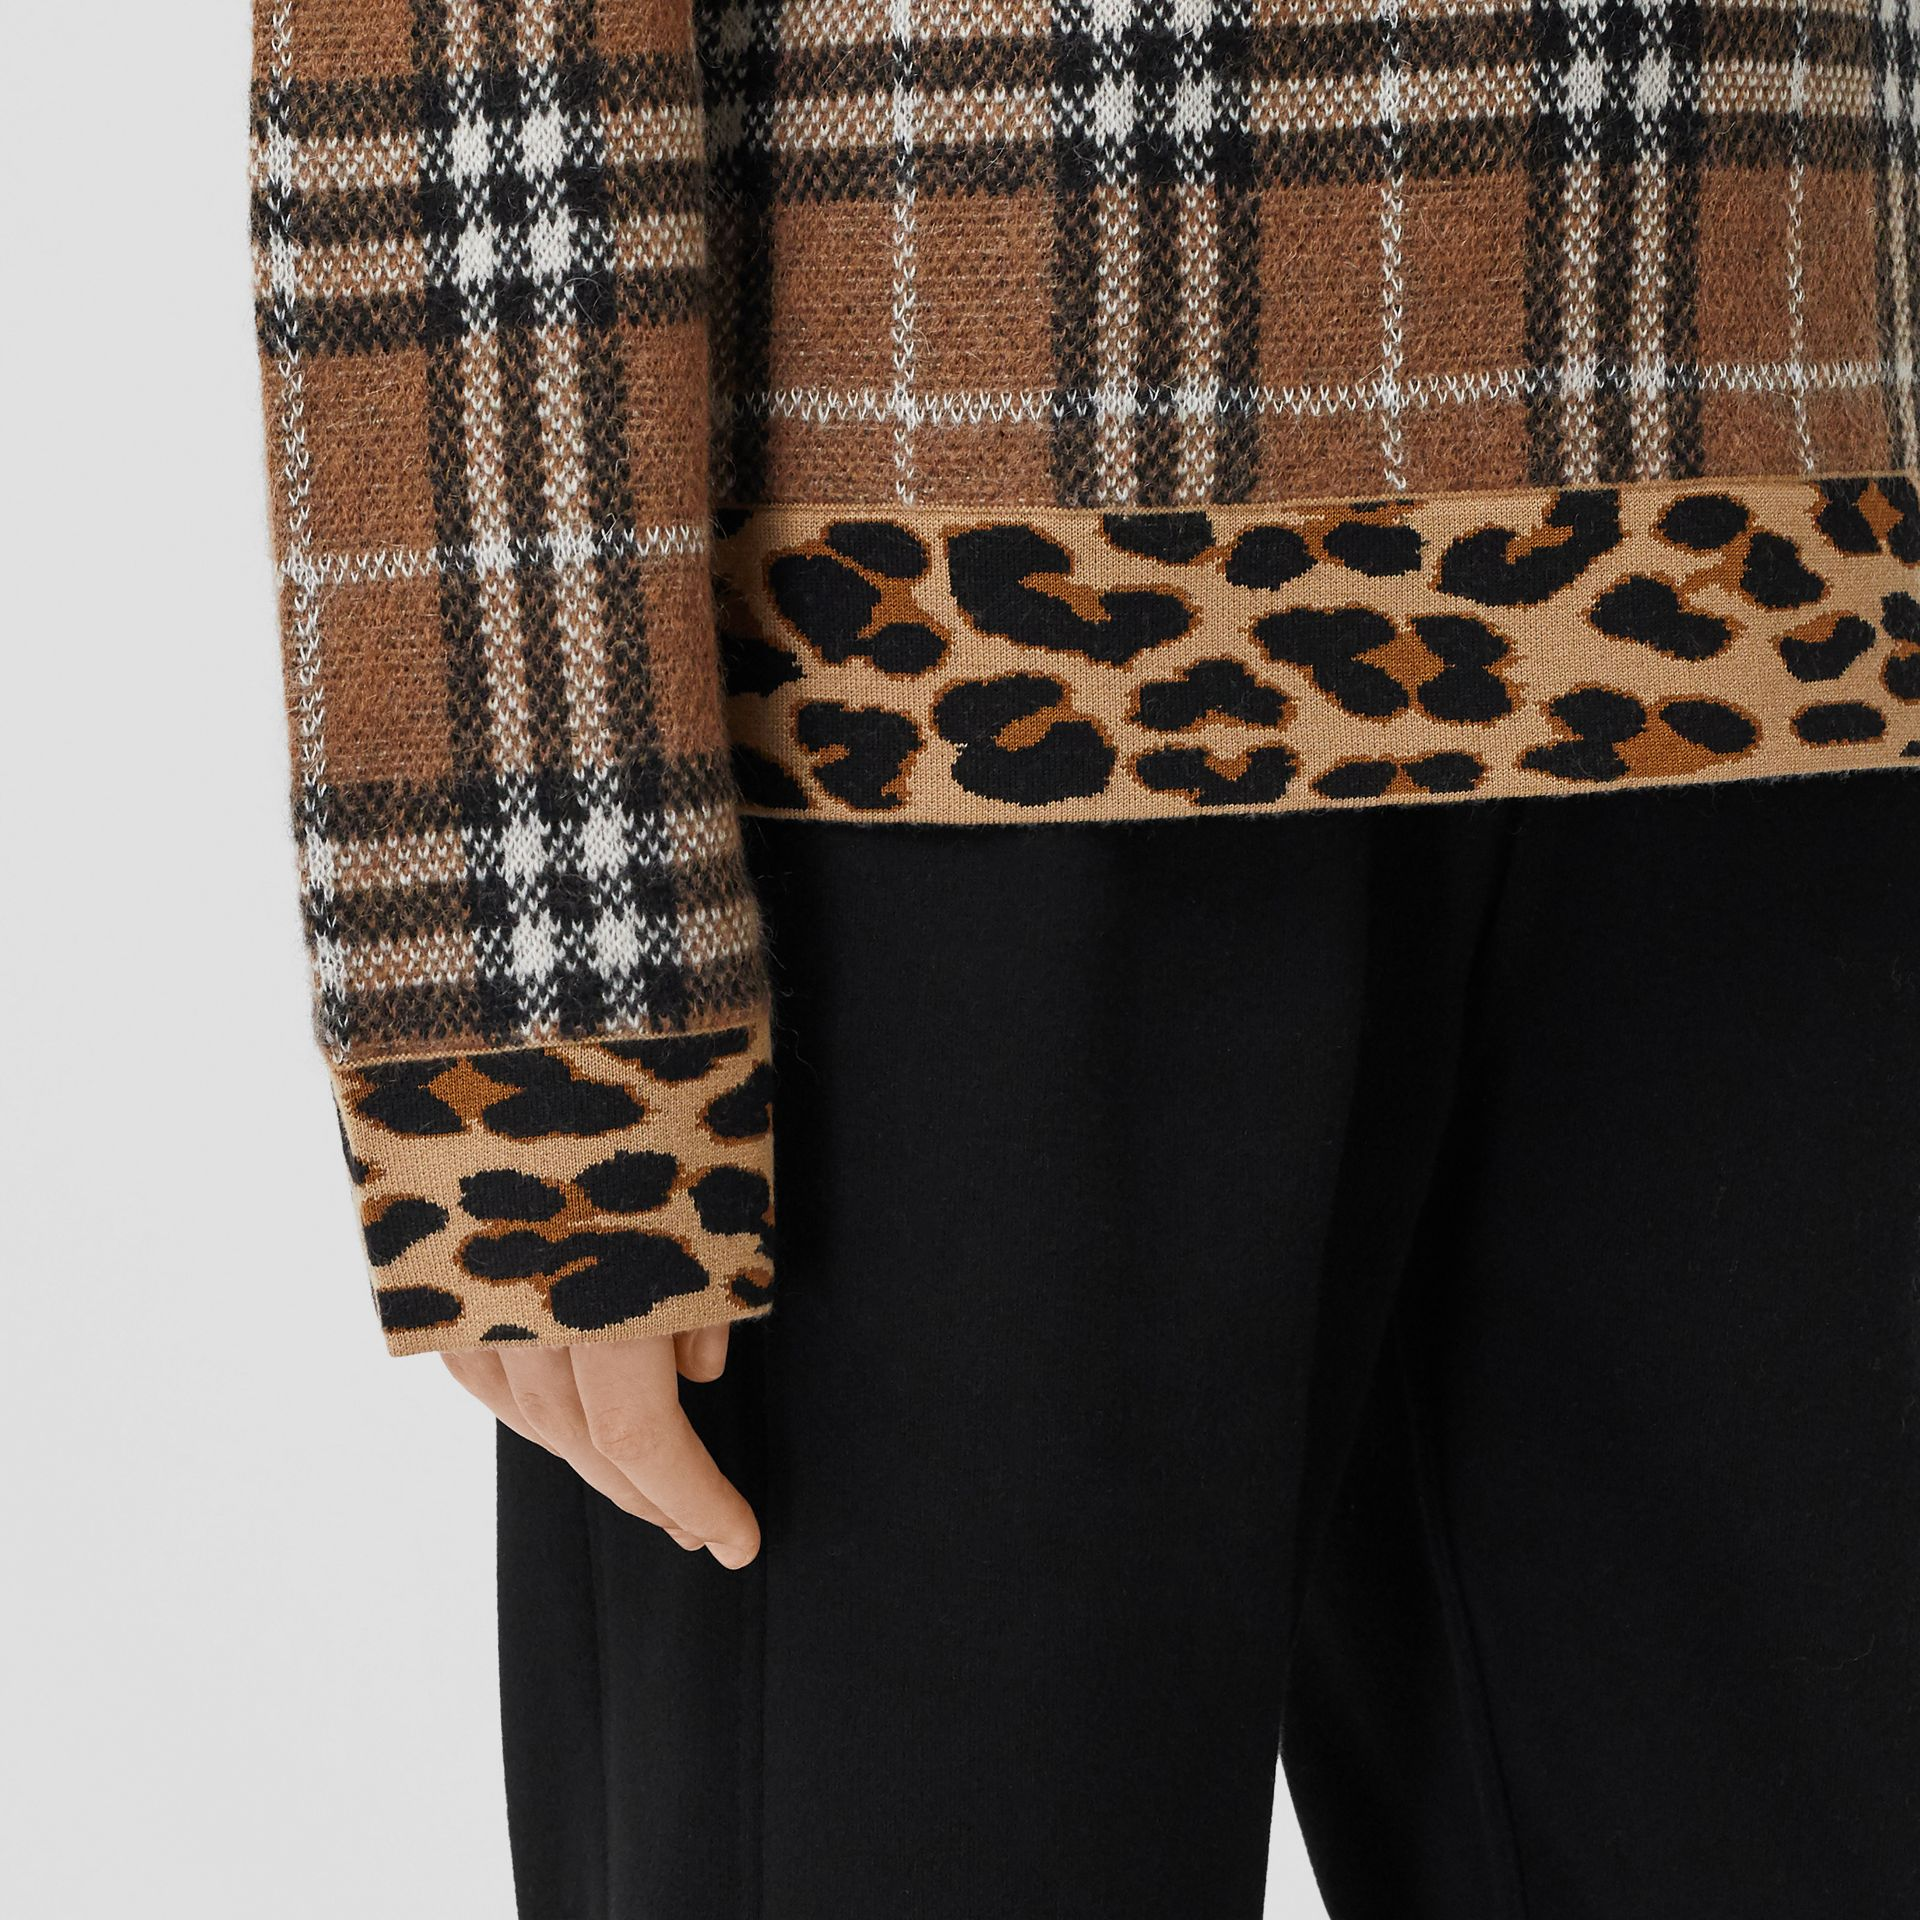 Leopard Detail Vintage Check Cashmere Blend Sweater in Archive Beige - Women | Burberry - gallery image 4